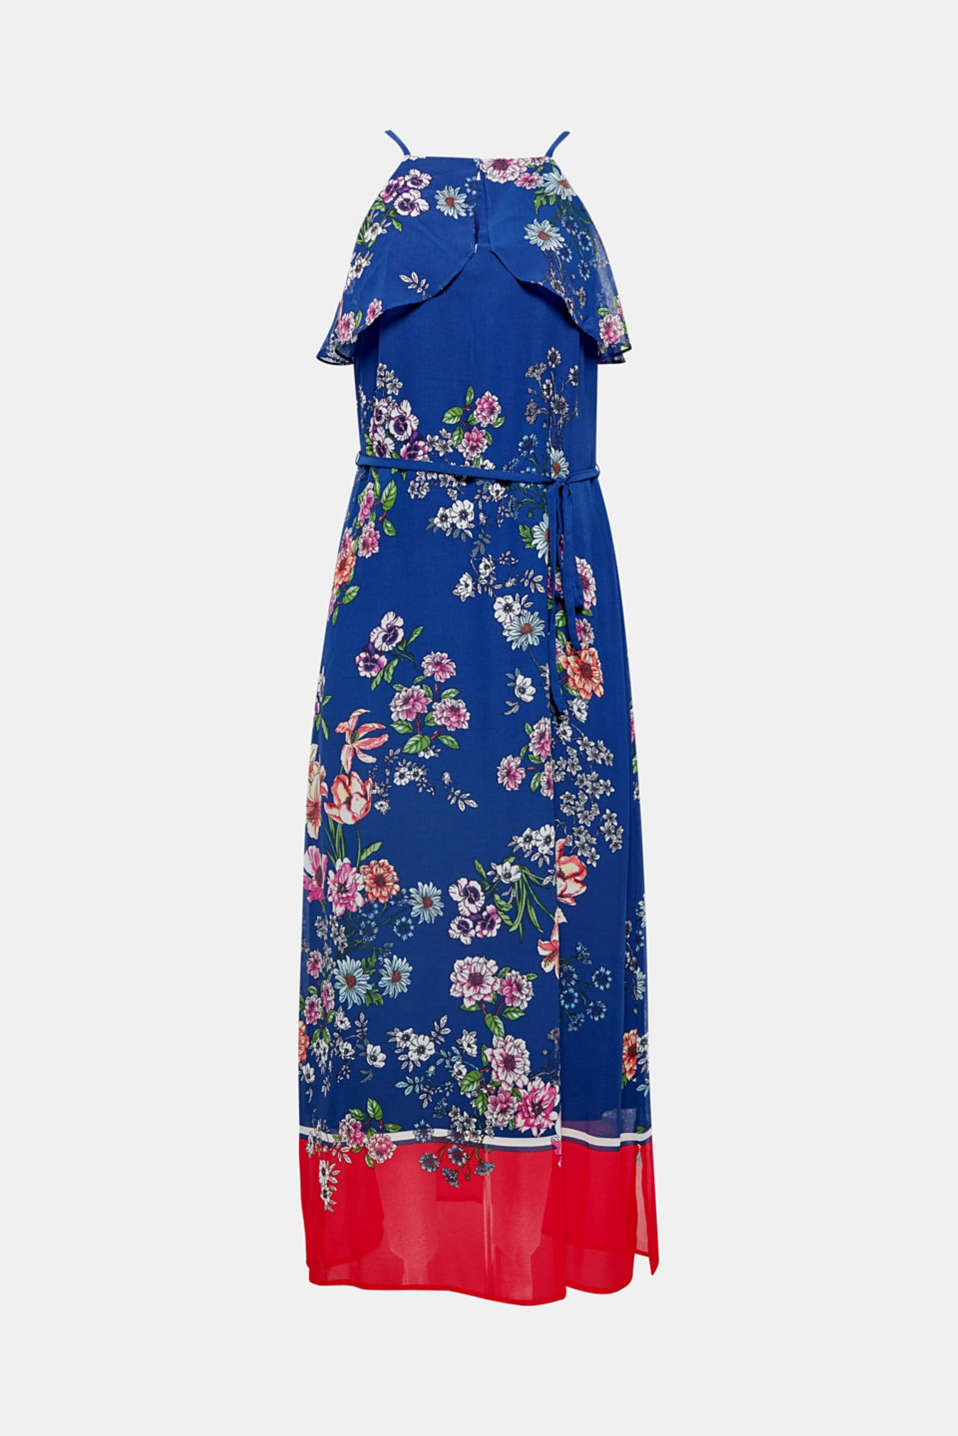 We love maxi dresses! The cut-out plus frill trim at the neckline and contrast between a floral print and colour blocking make this particular example in delicate chiffon completely captivating.